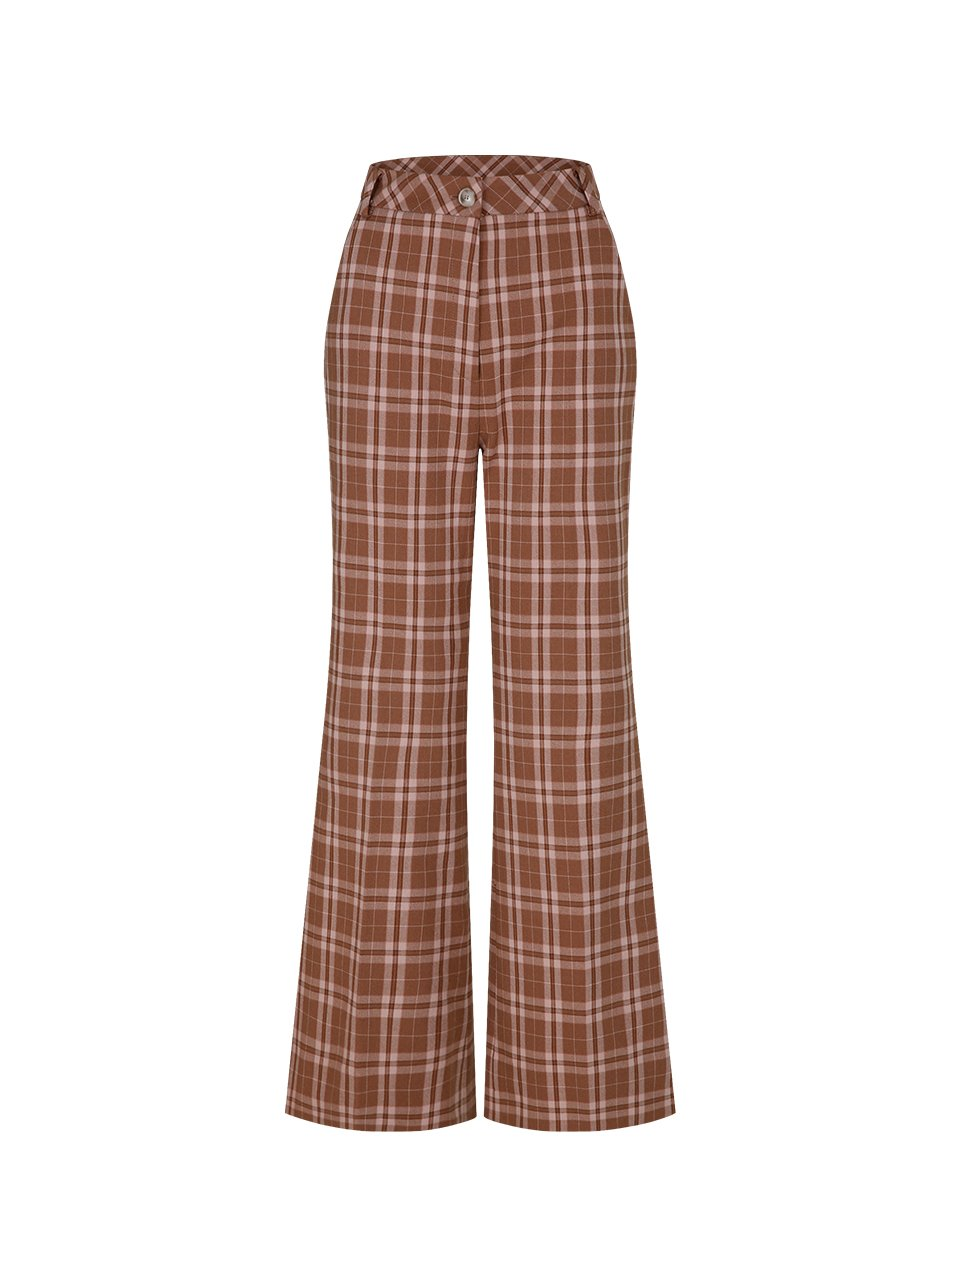 cocoa check pants